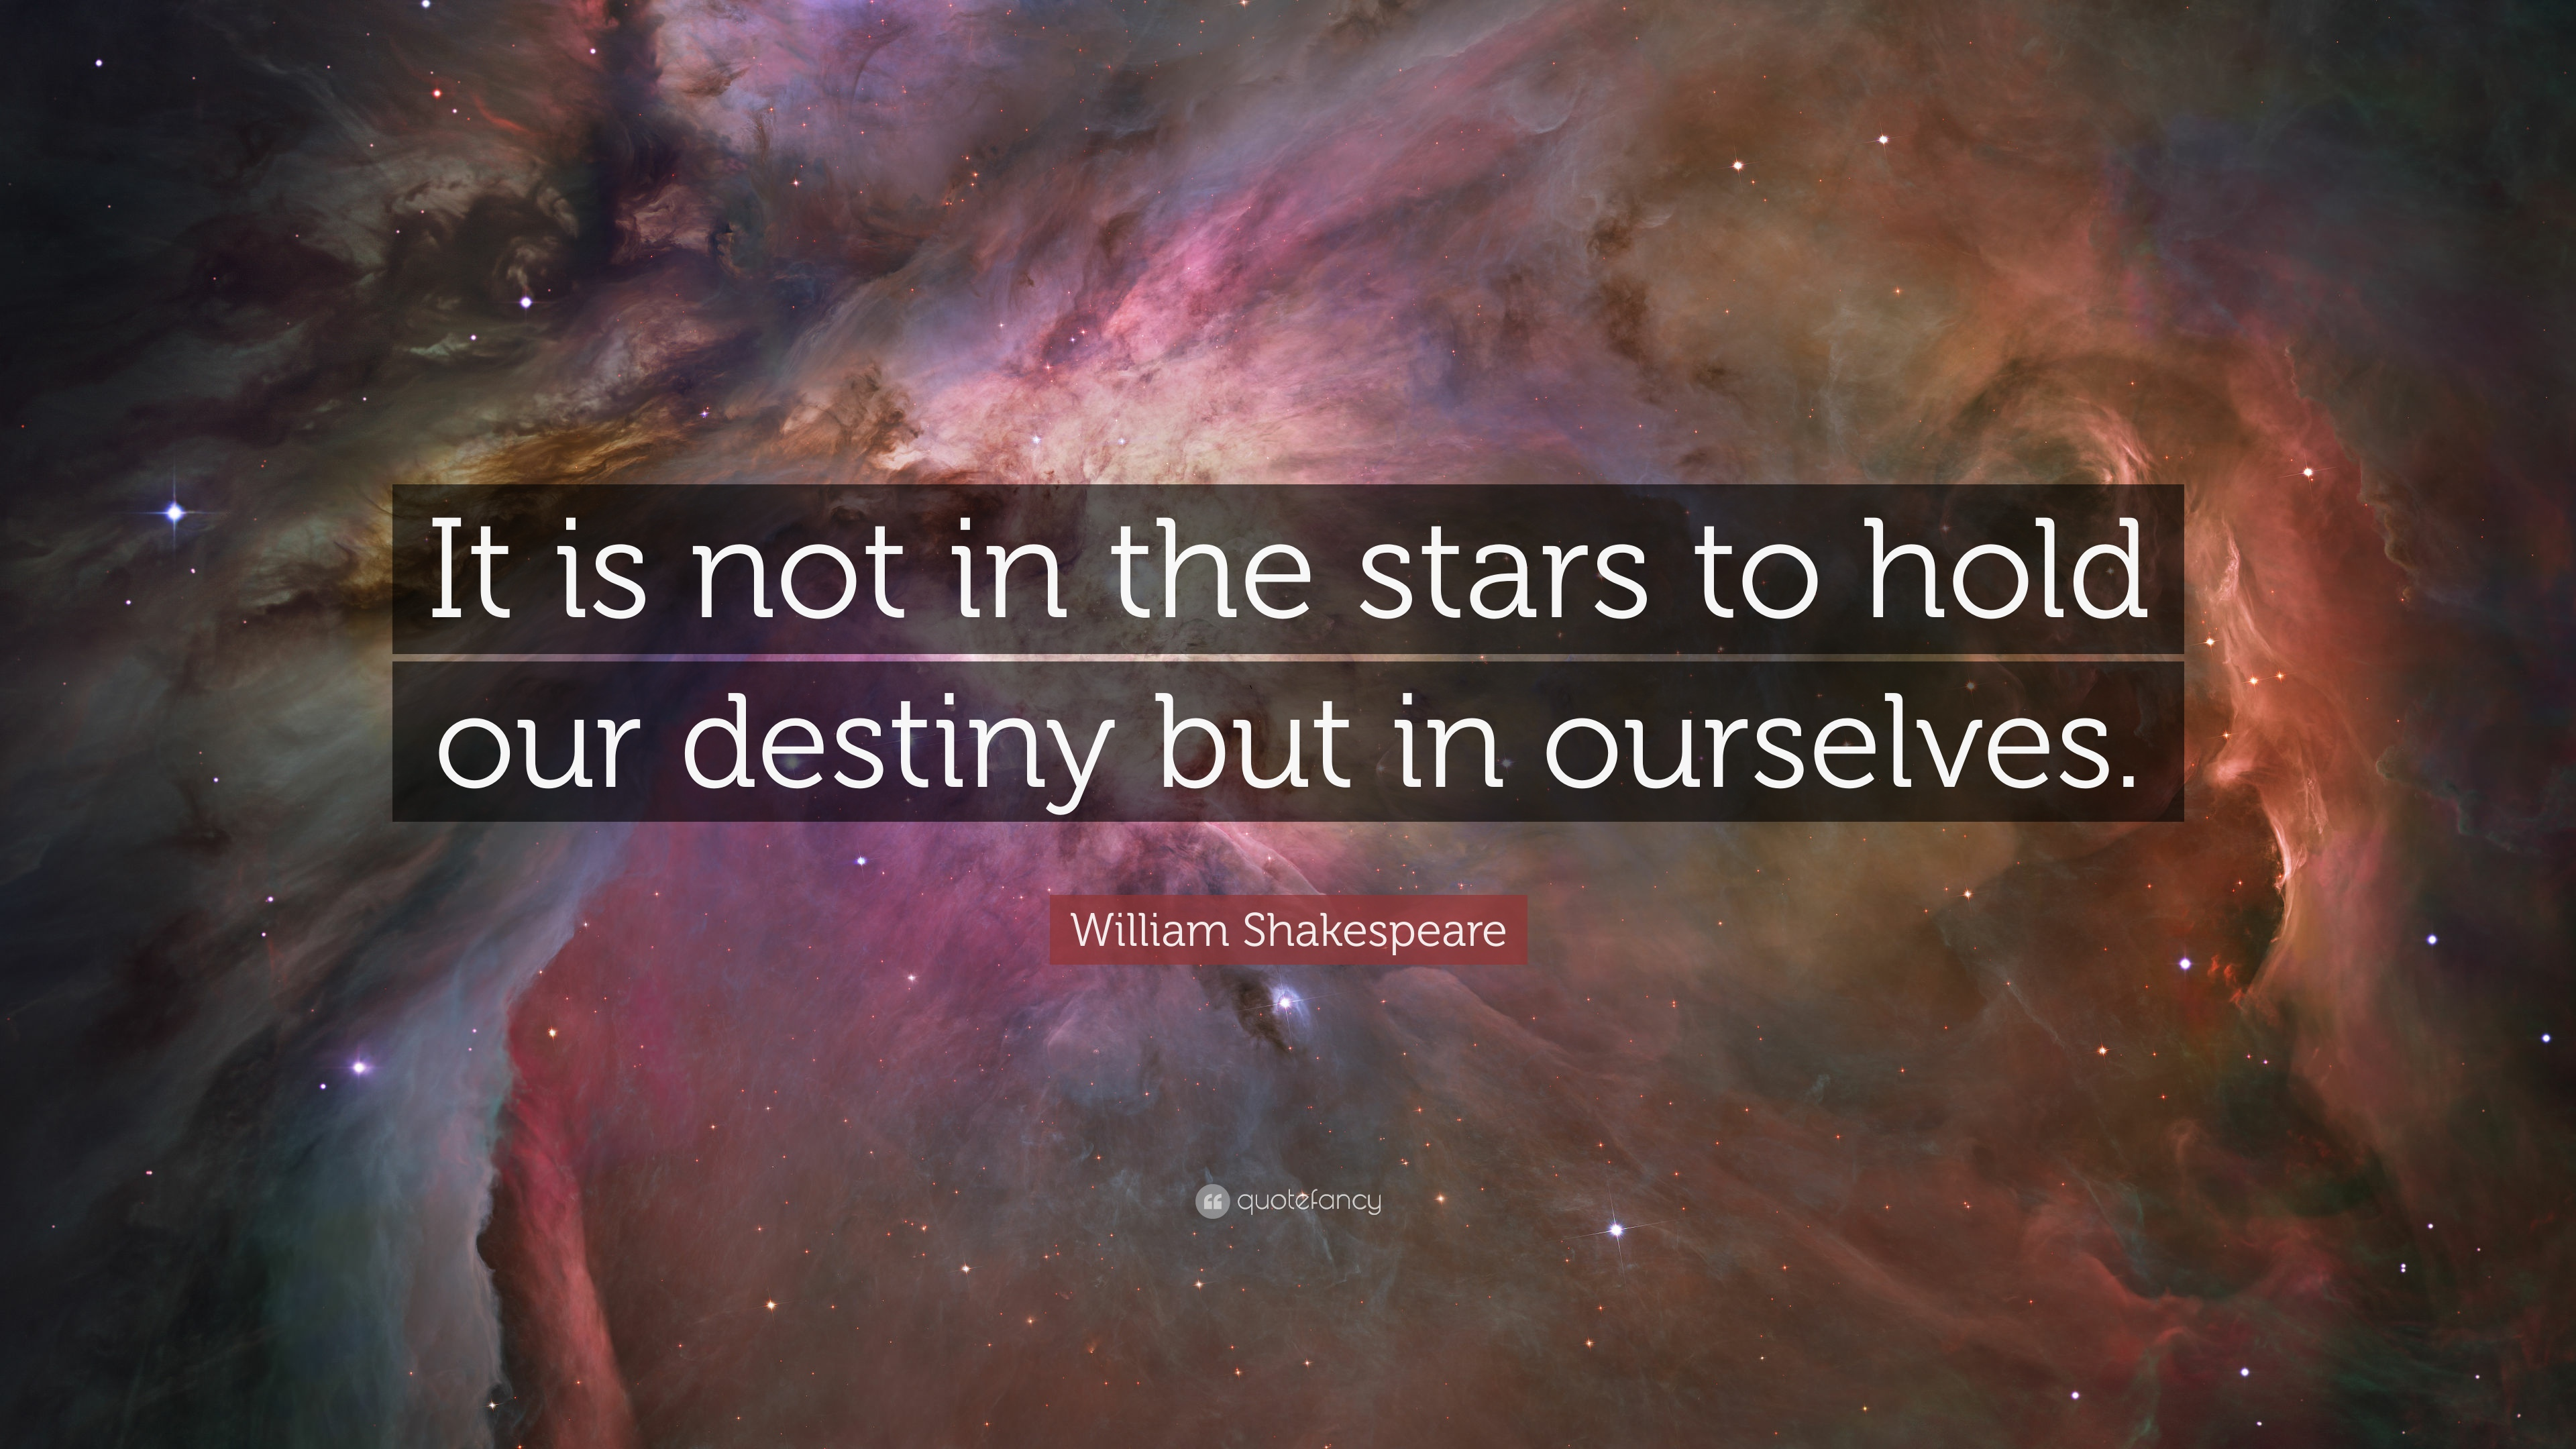 John Lennon Quotes Wallpaper William Shakespeare Quote It Is Not In The Stars To Hold